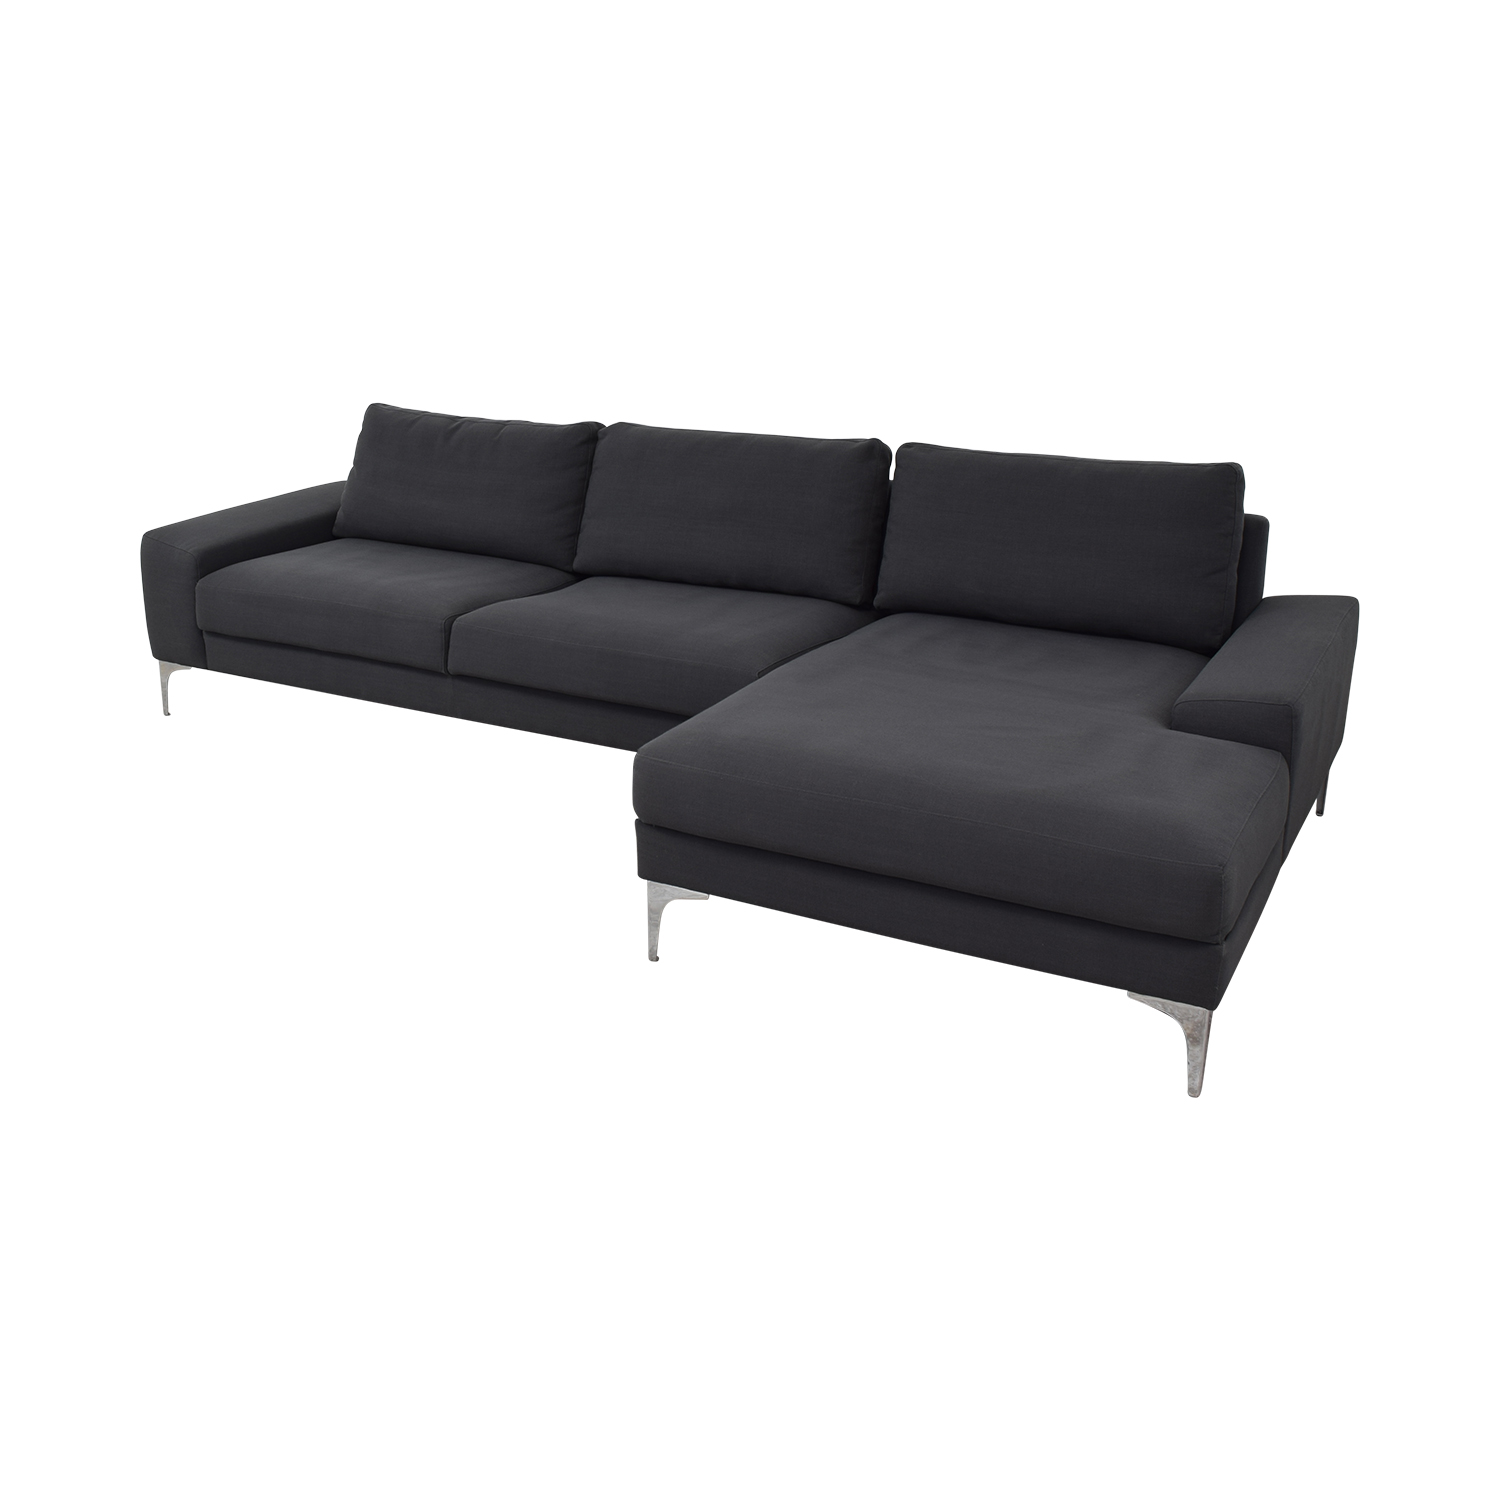 Industry West Industry West Sectional Sofa used